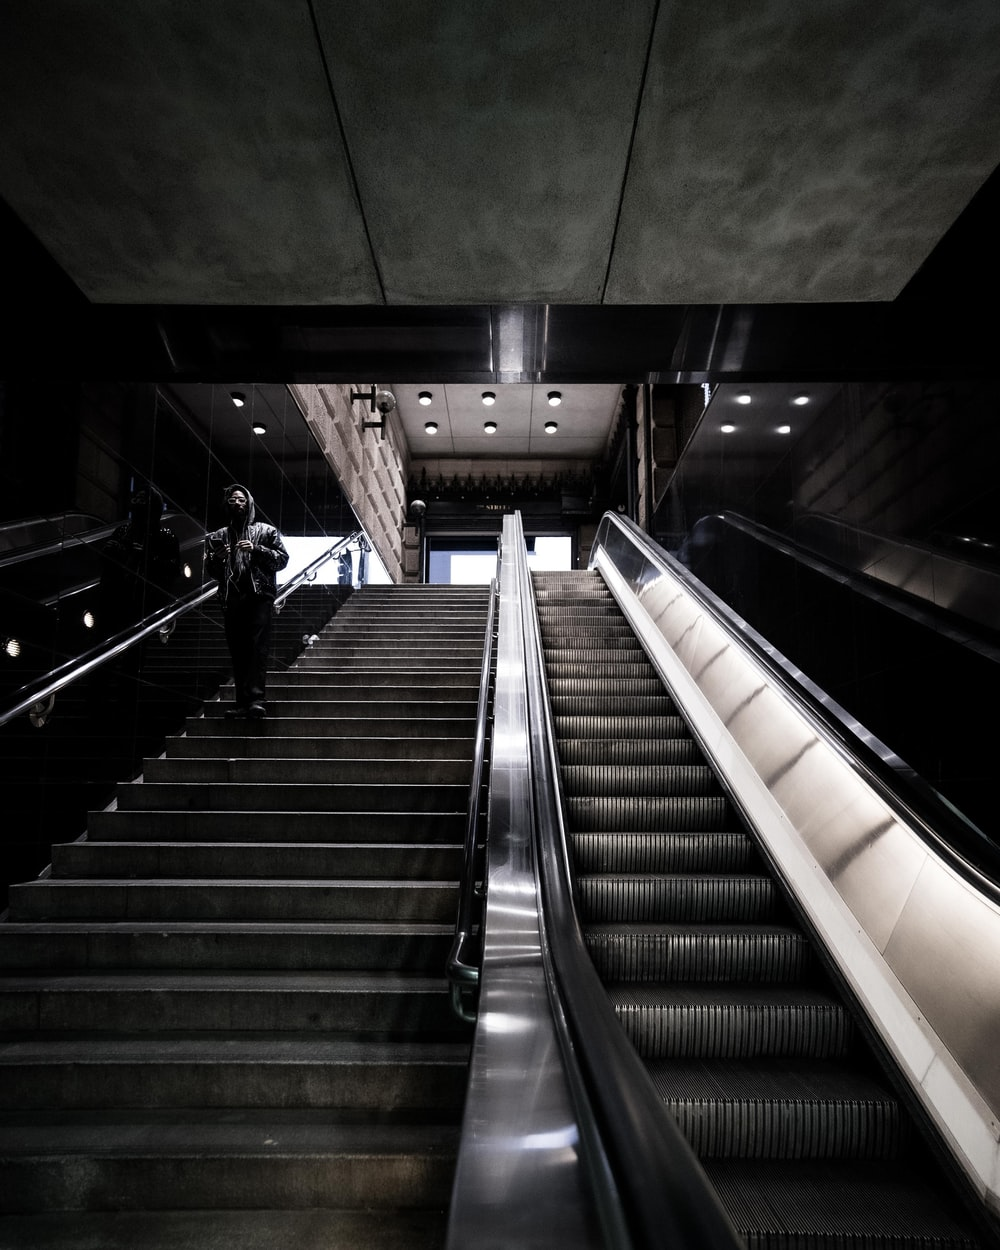 person wearing hooded jacket standing on concrete stairs near escalator